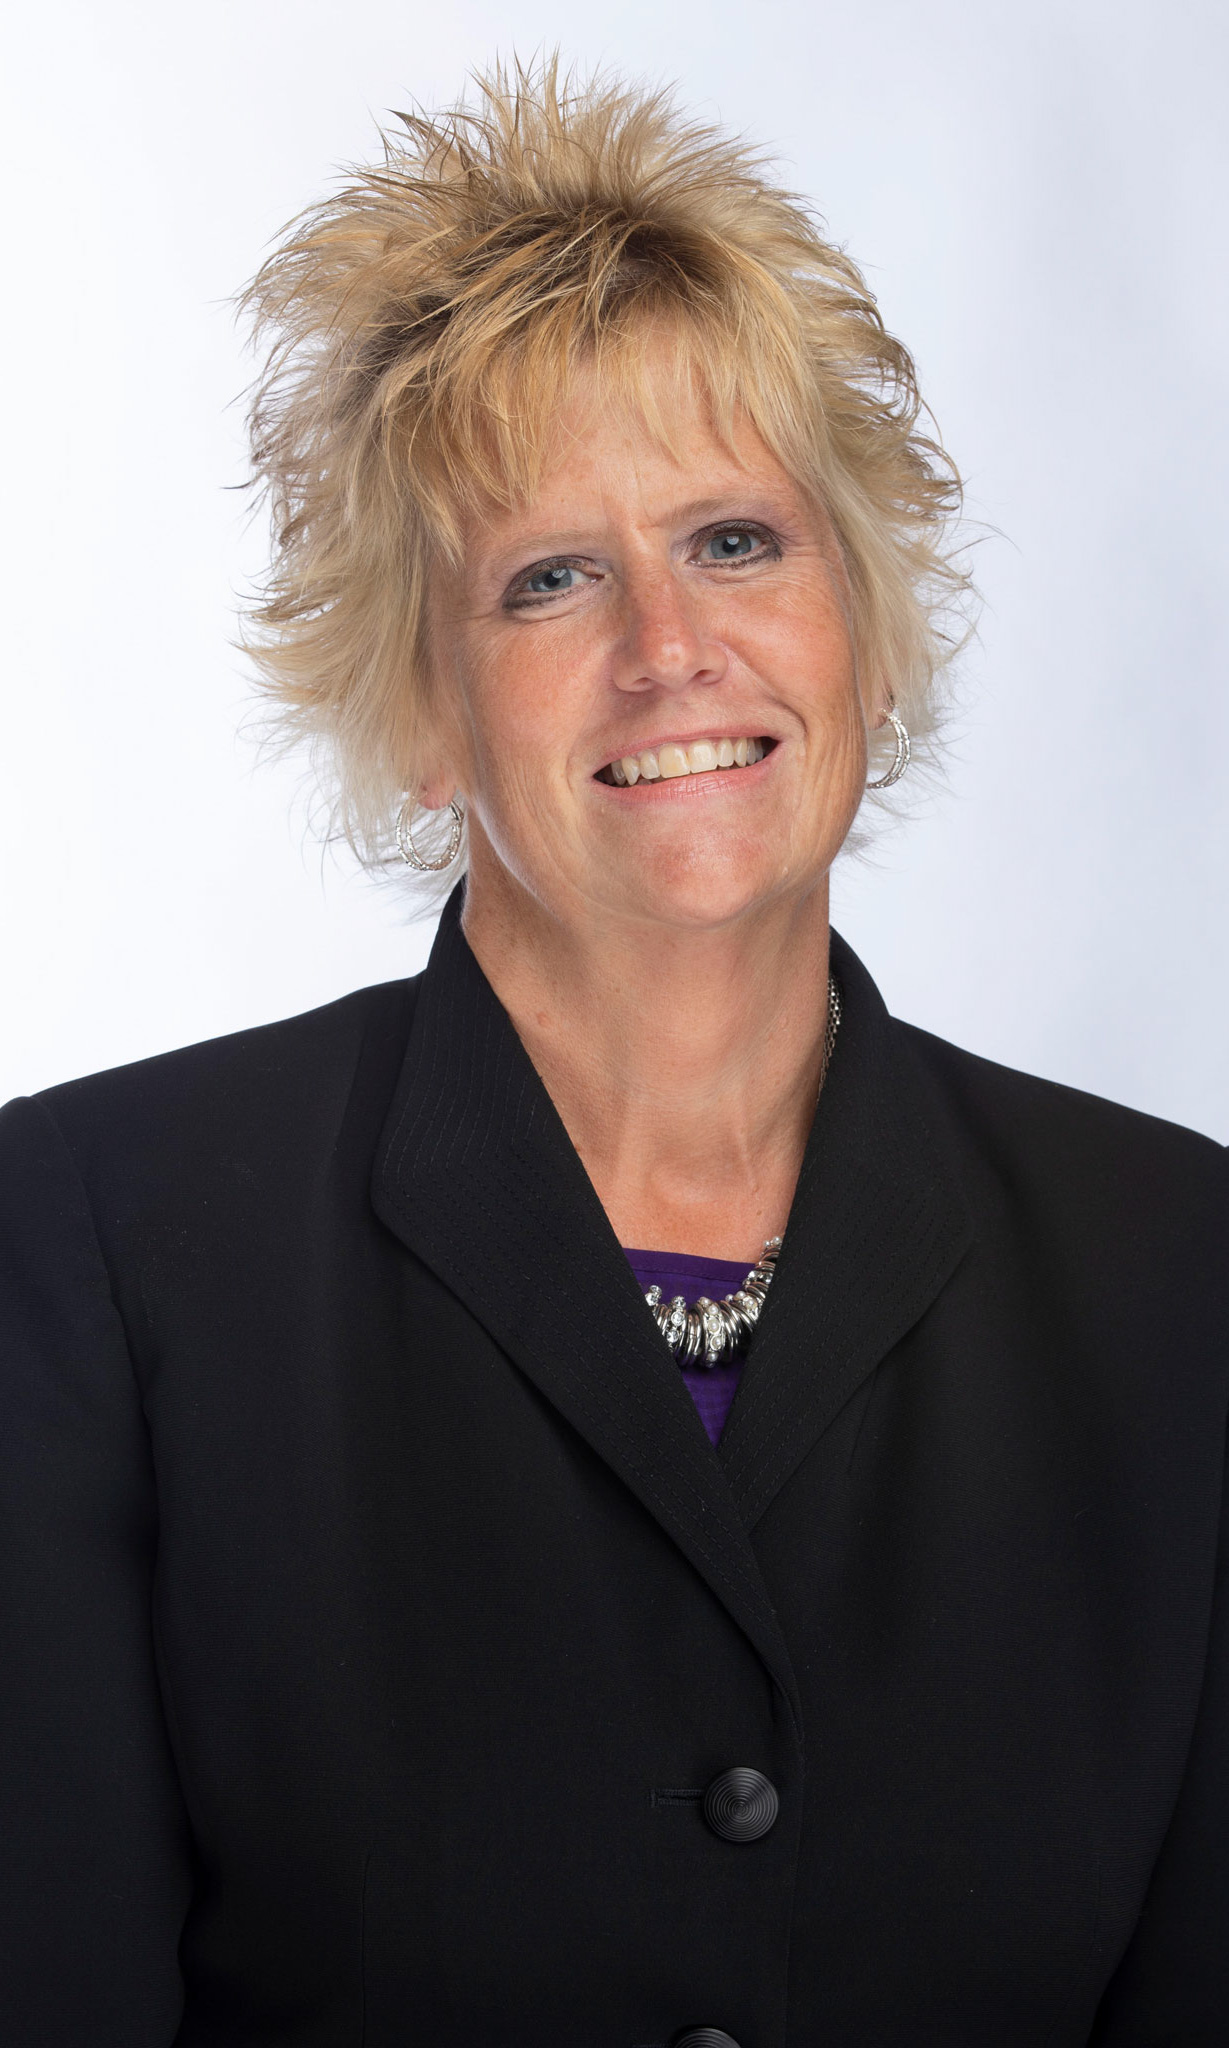 Deborah McKernan-Ace from Department of Psychiatric Rehabilitation And Counseling Professions